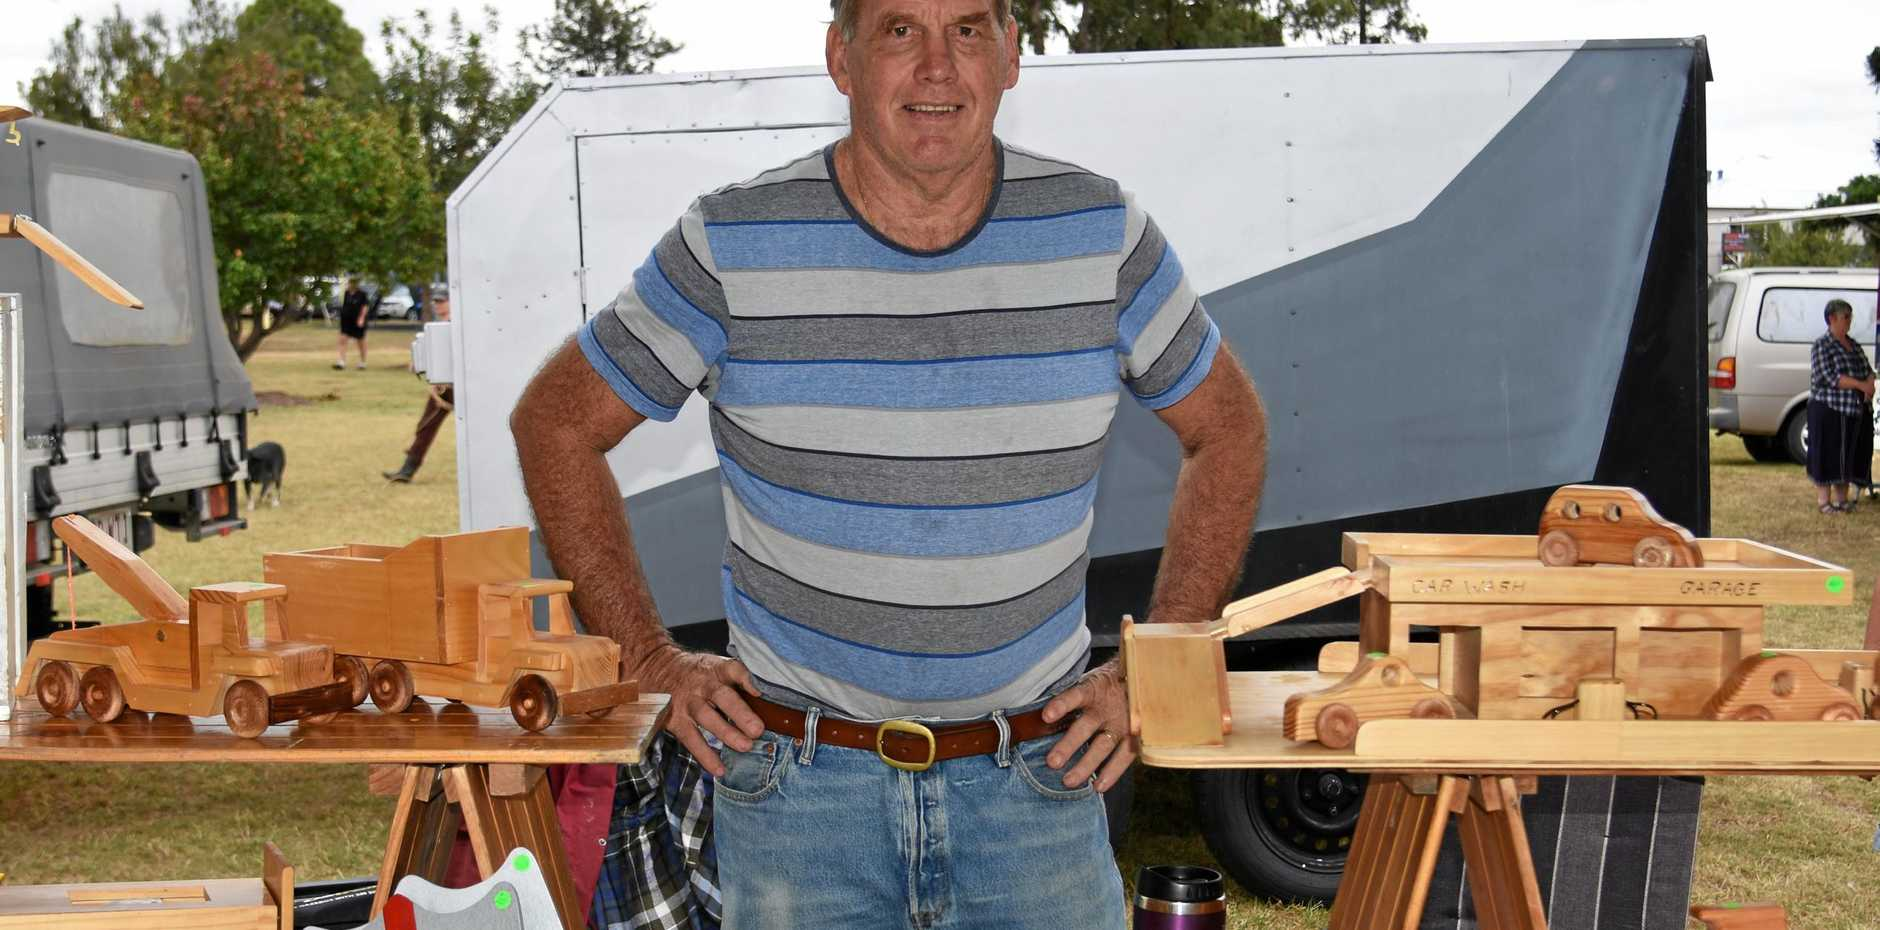 CREATOR: Chris Guymer makes handmade wooden toys from his home in Warwick.